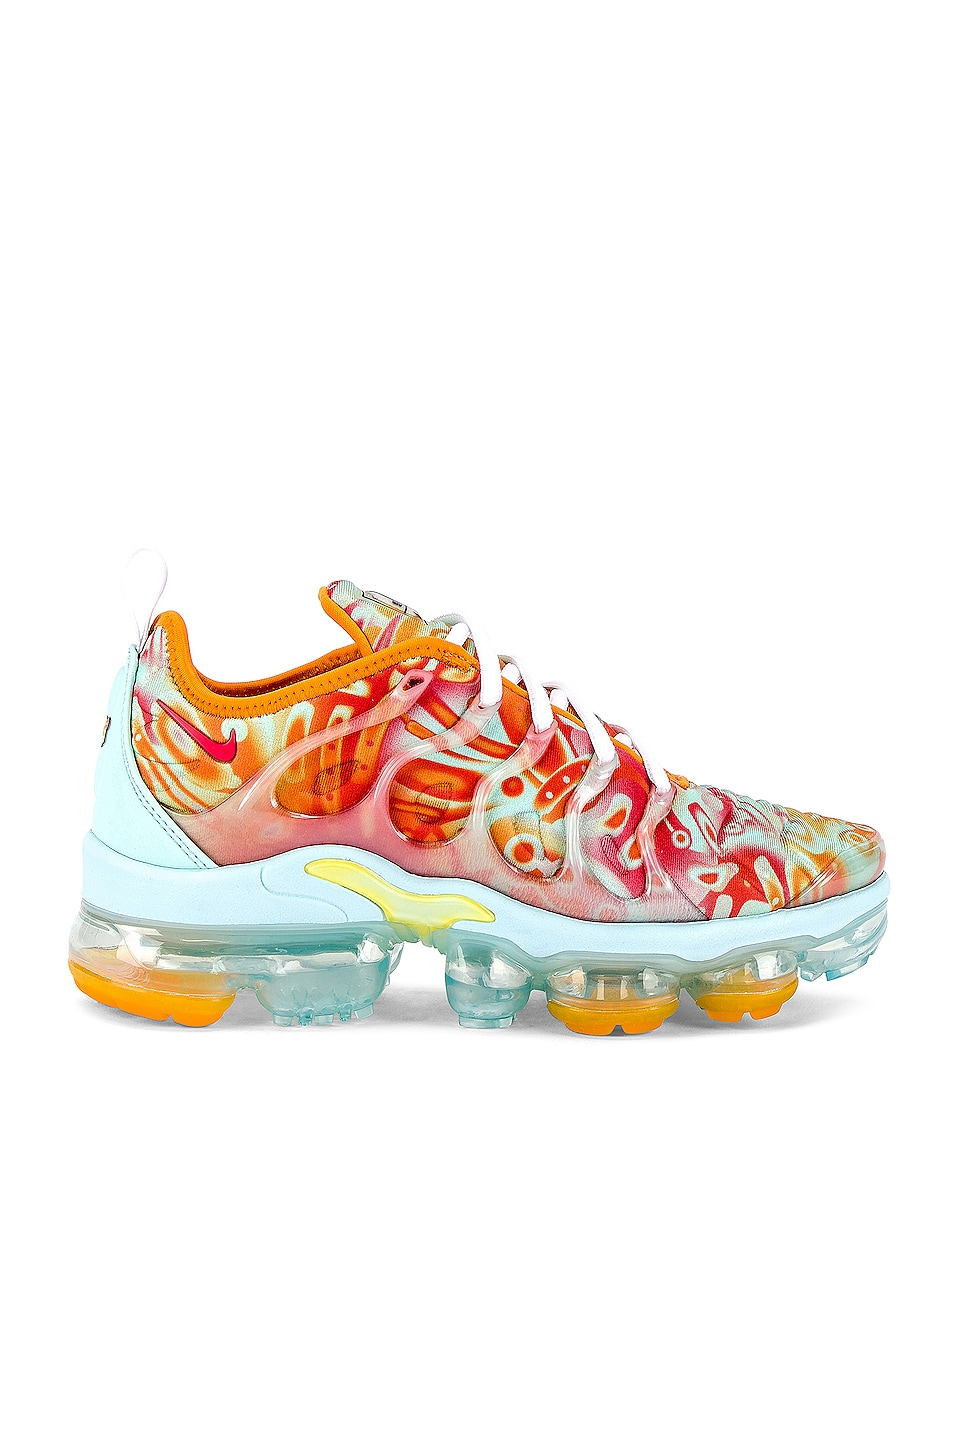 Nike Air Vapormax Plus Sneaker in Teal Tint, Ember Glow & Orange Peel